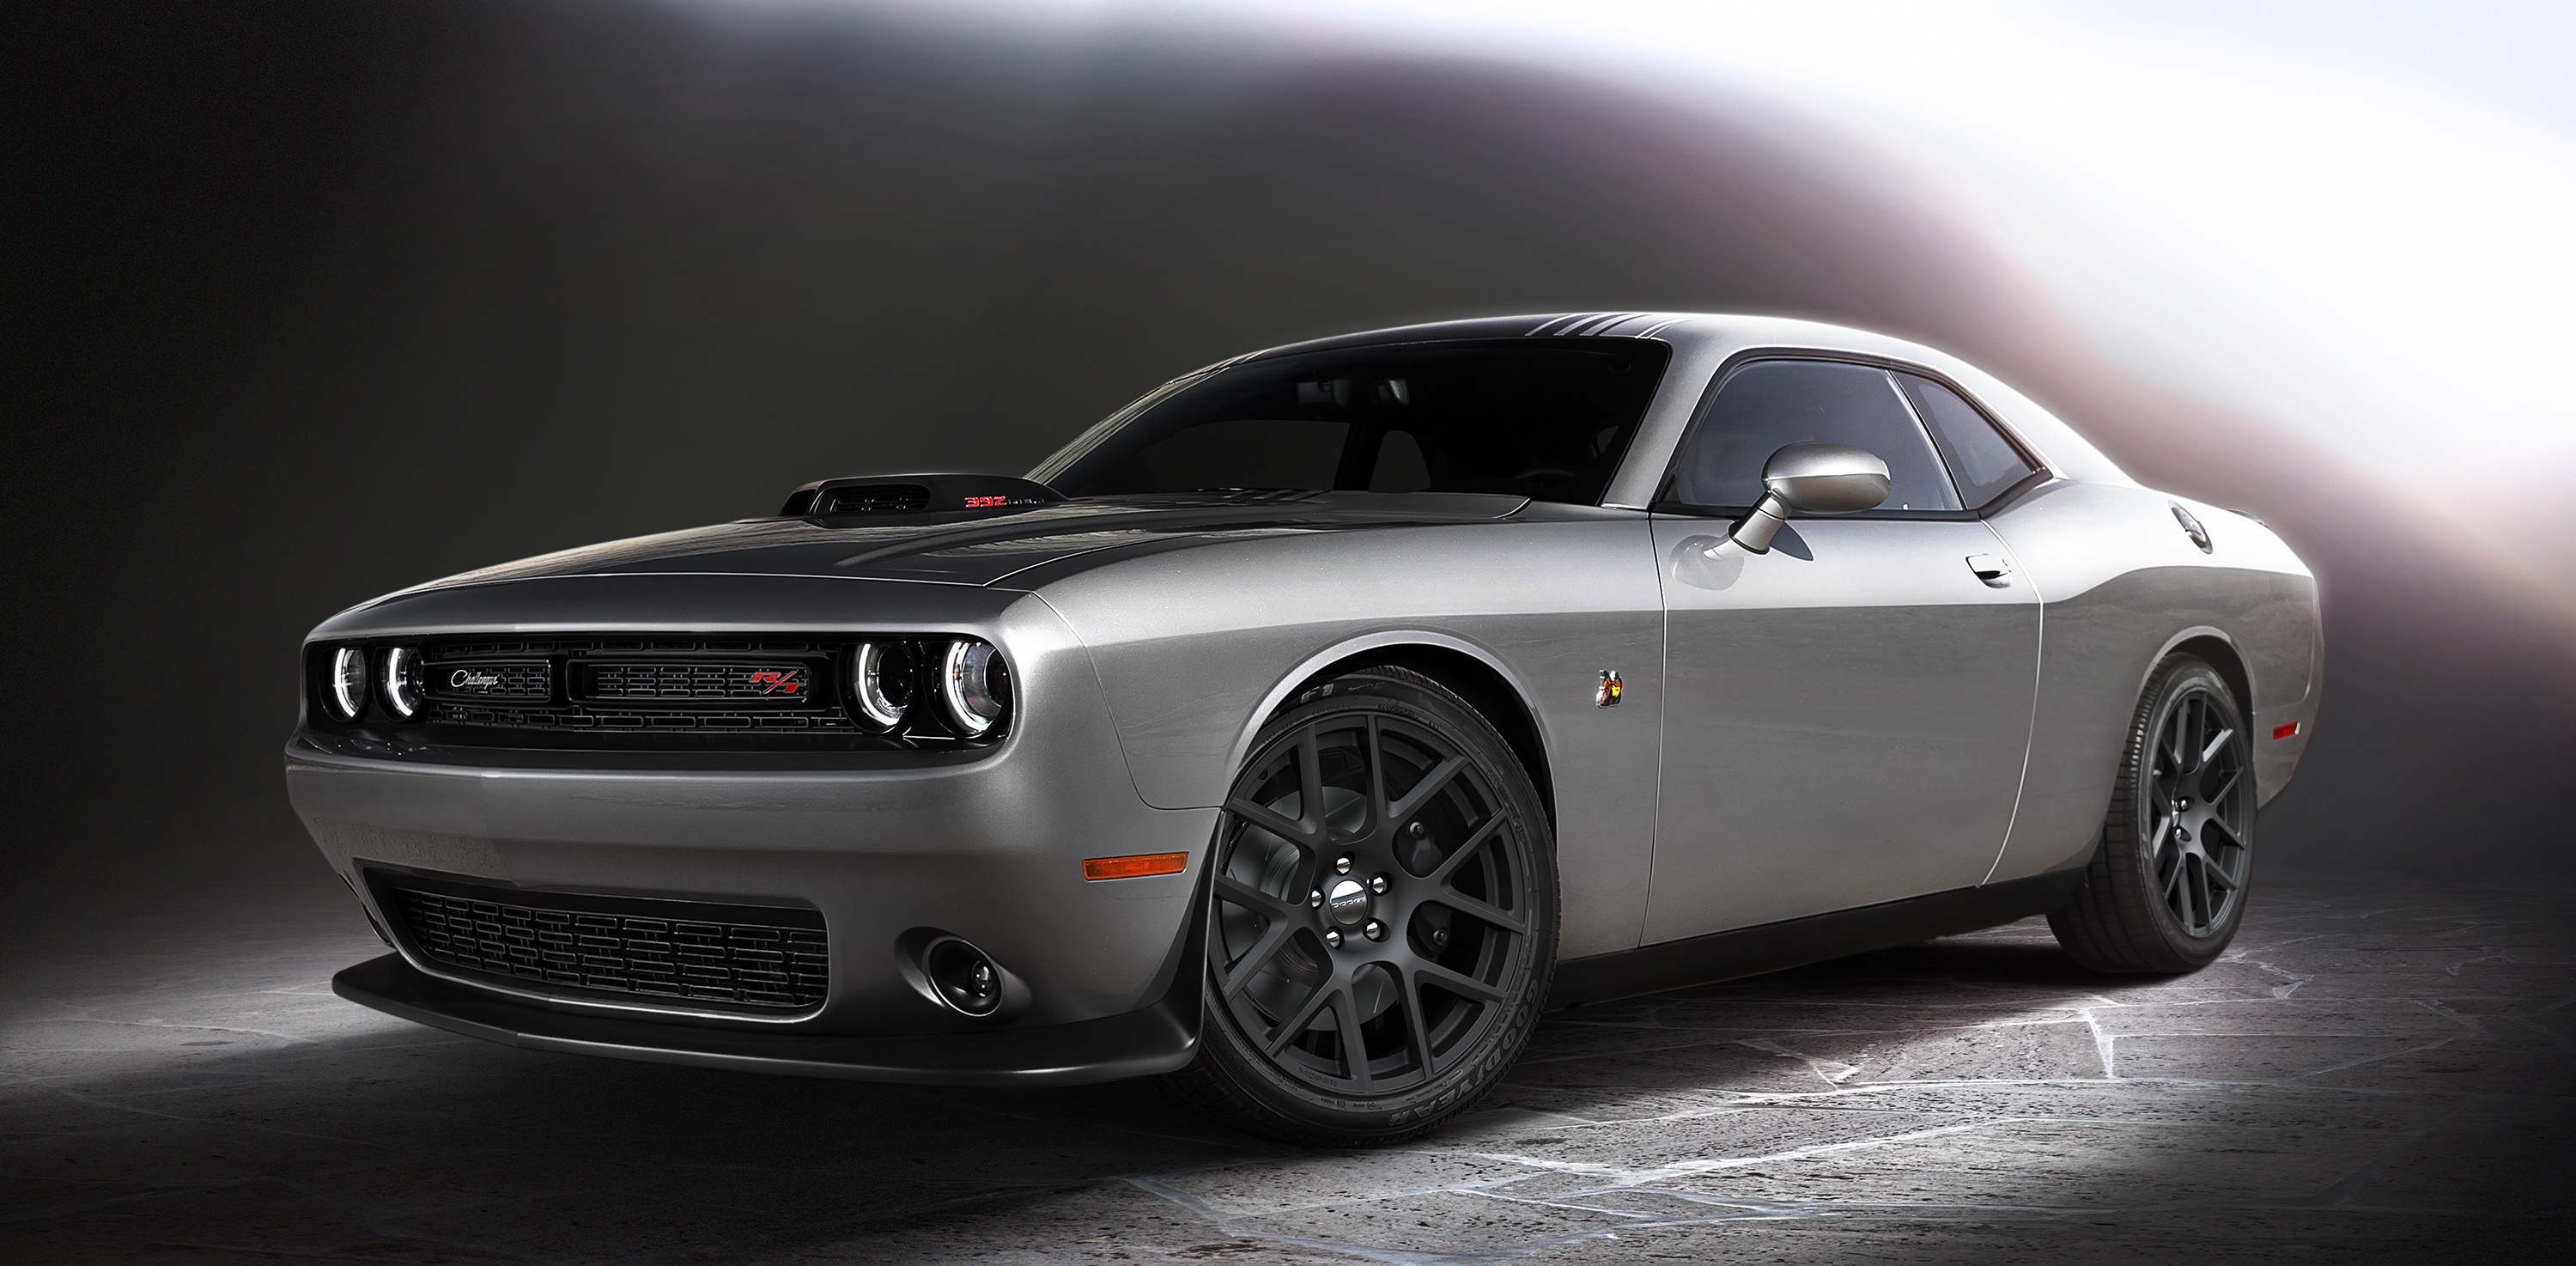 dodge 39 shakes it up 39 with new challengers models featuring a legendary hood scoop pittsburgh. Black Bedroom Furniture Sets. Home Design Ideas